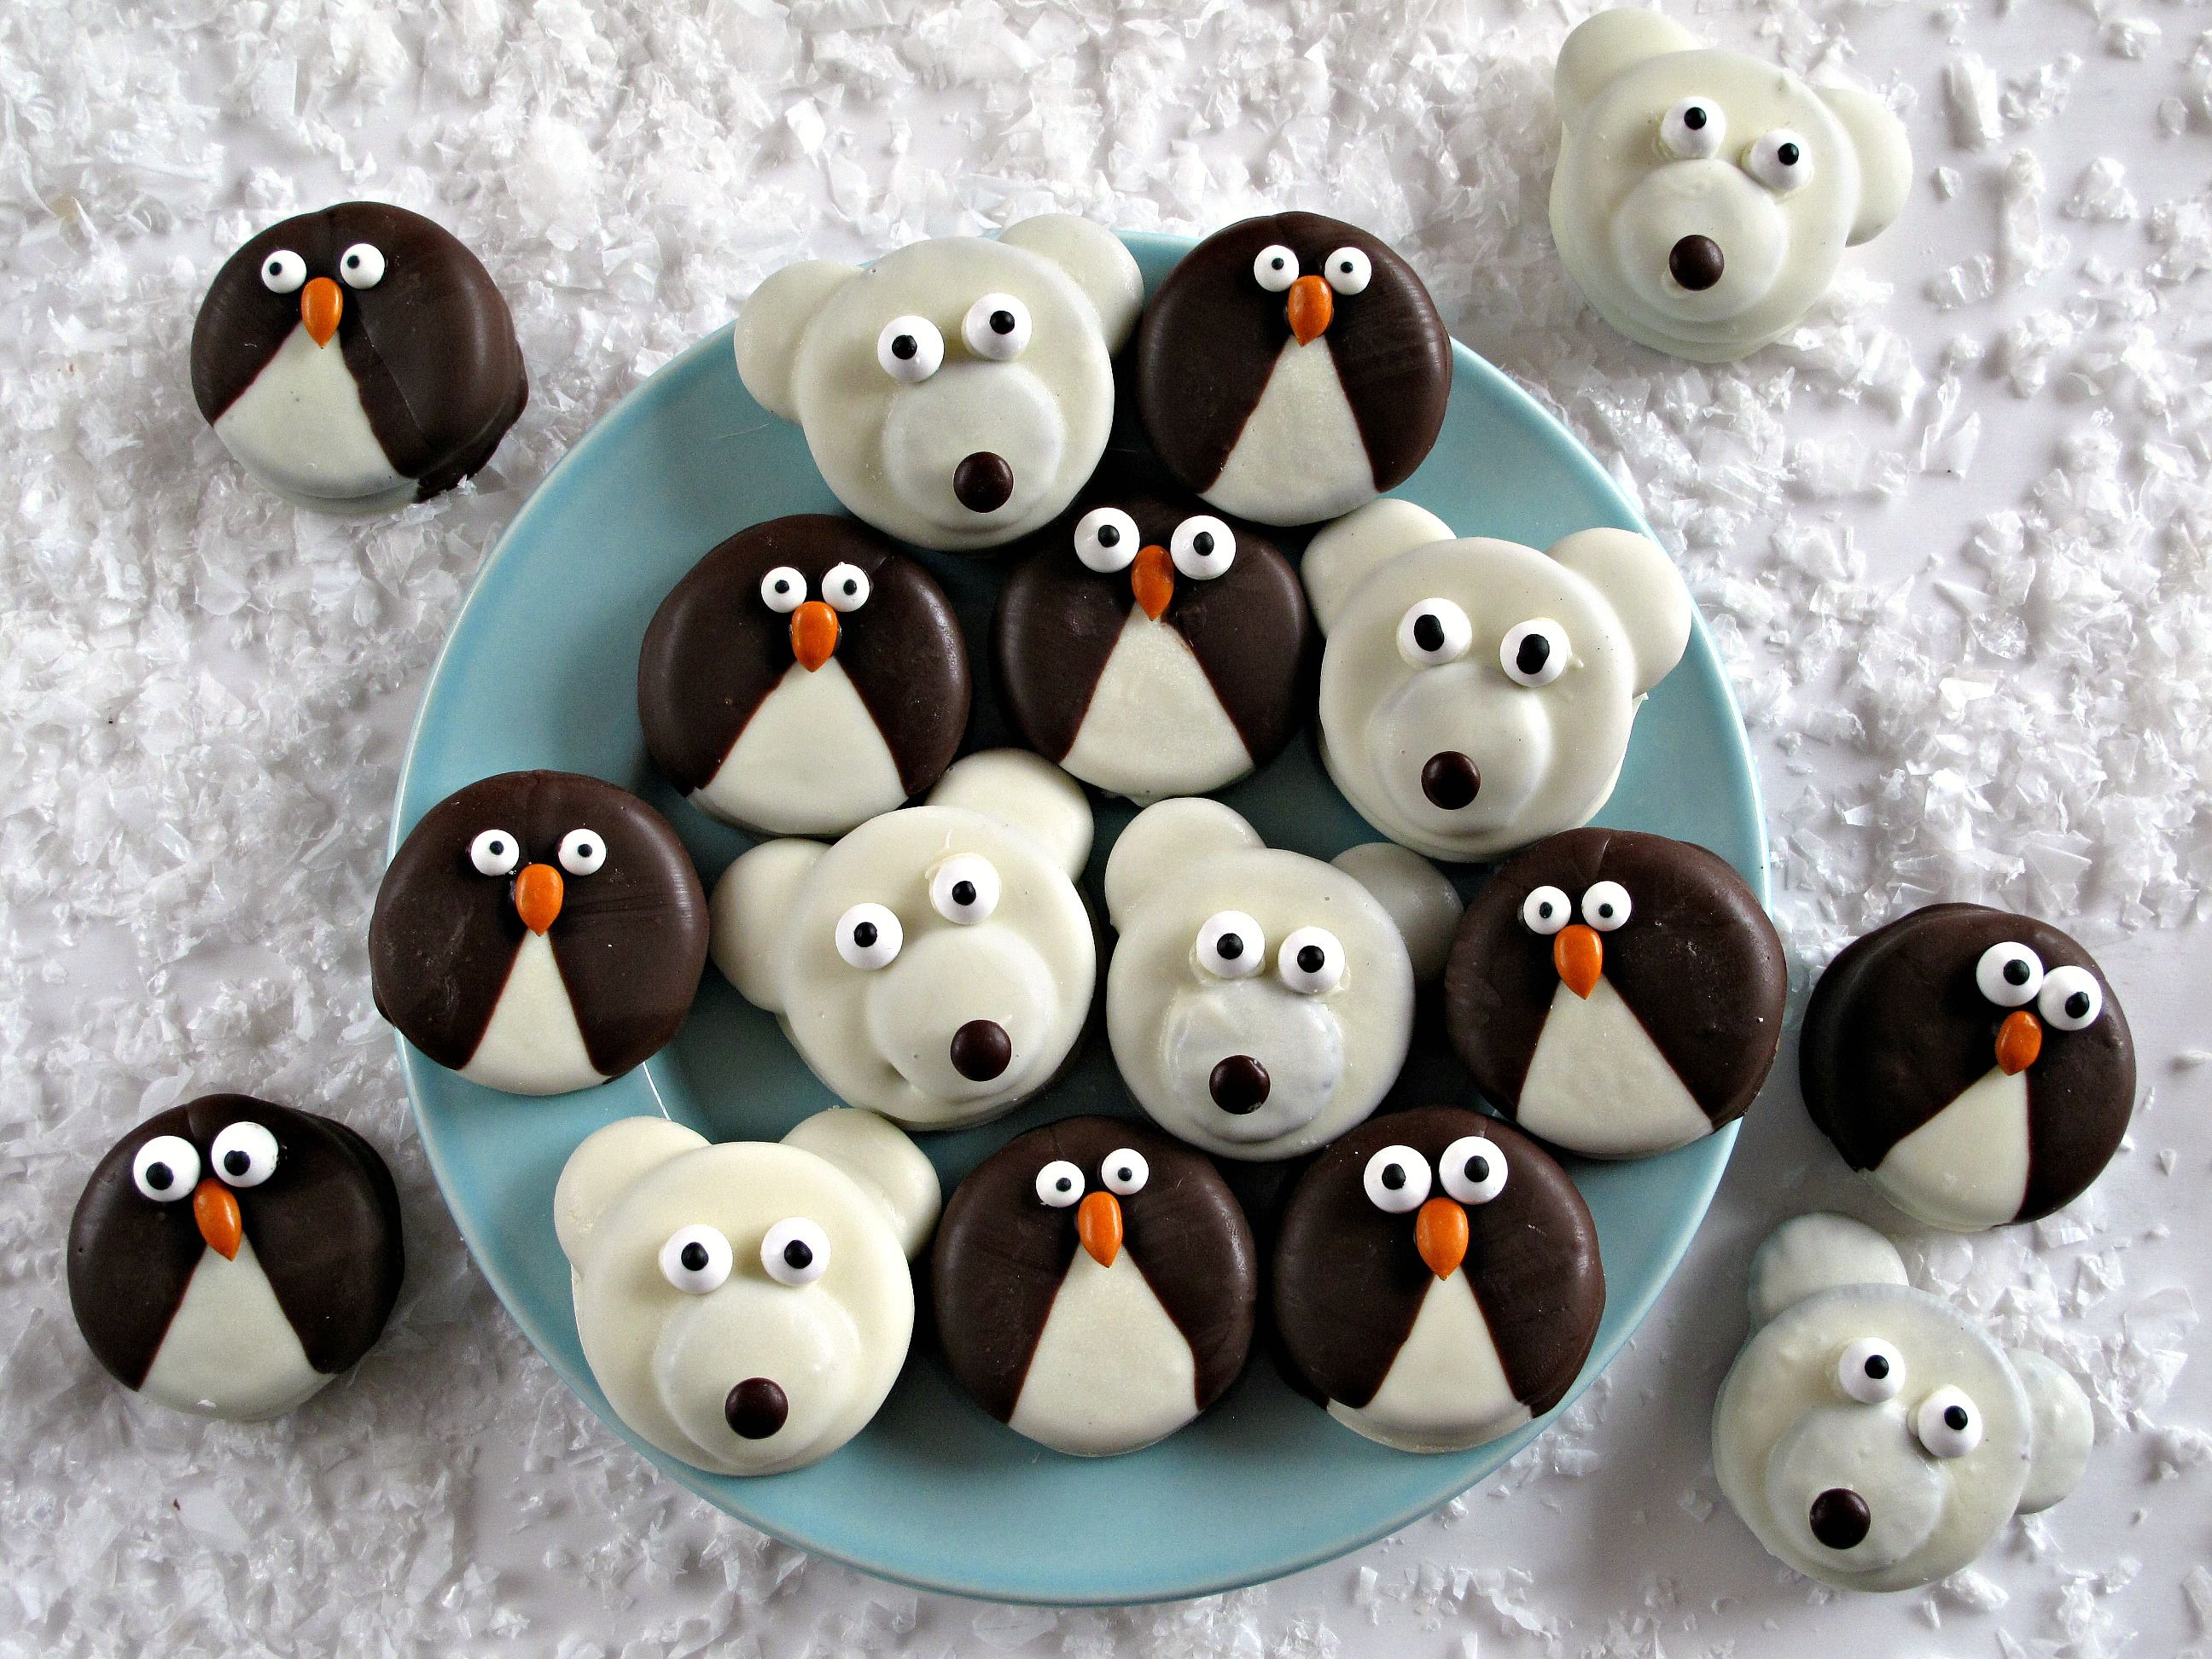 Penguin and Polar Bear Oreos- Delight in a winter themed snack with these adorable chocolate dipped Oreos decorated as penguins and polar bears! Simple instructions included. The Monday Box